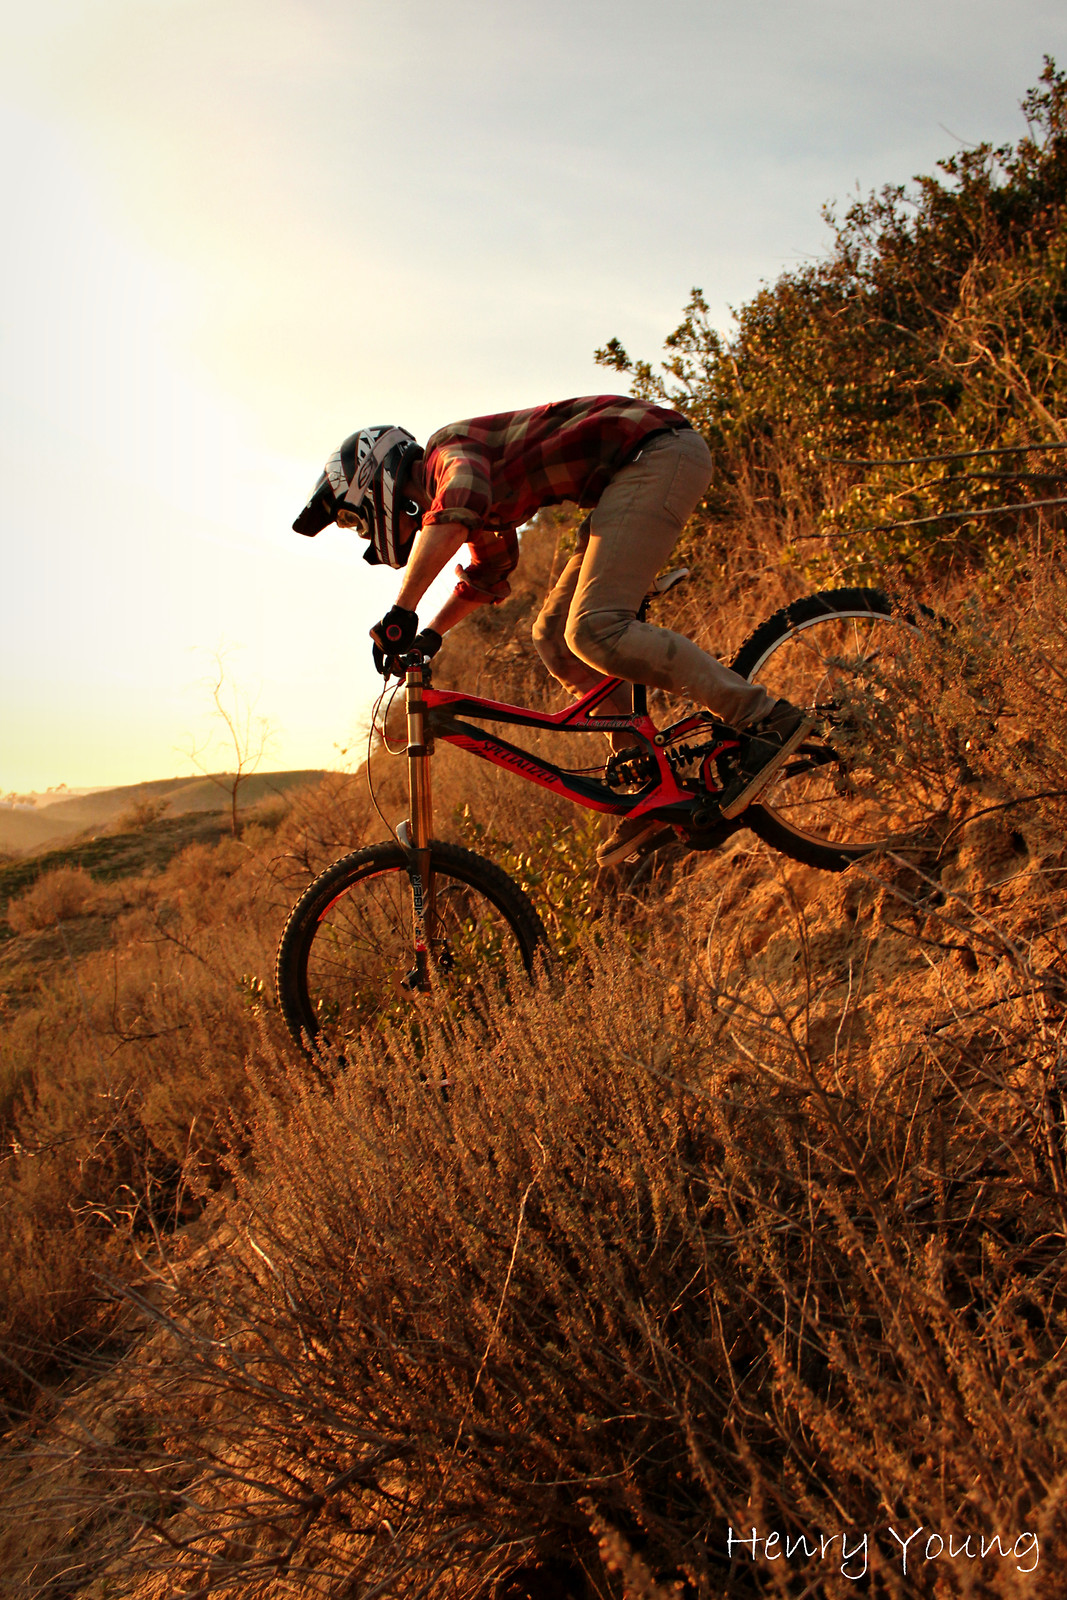 12-31-11 197 - Henry_Young - Mountain Biking Pictures - Vital MTB